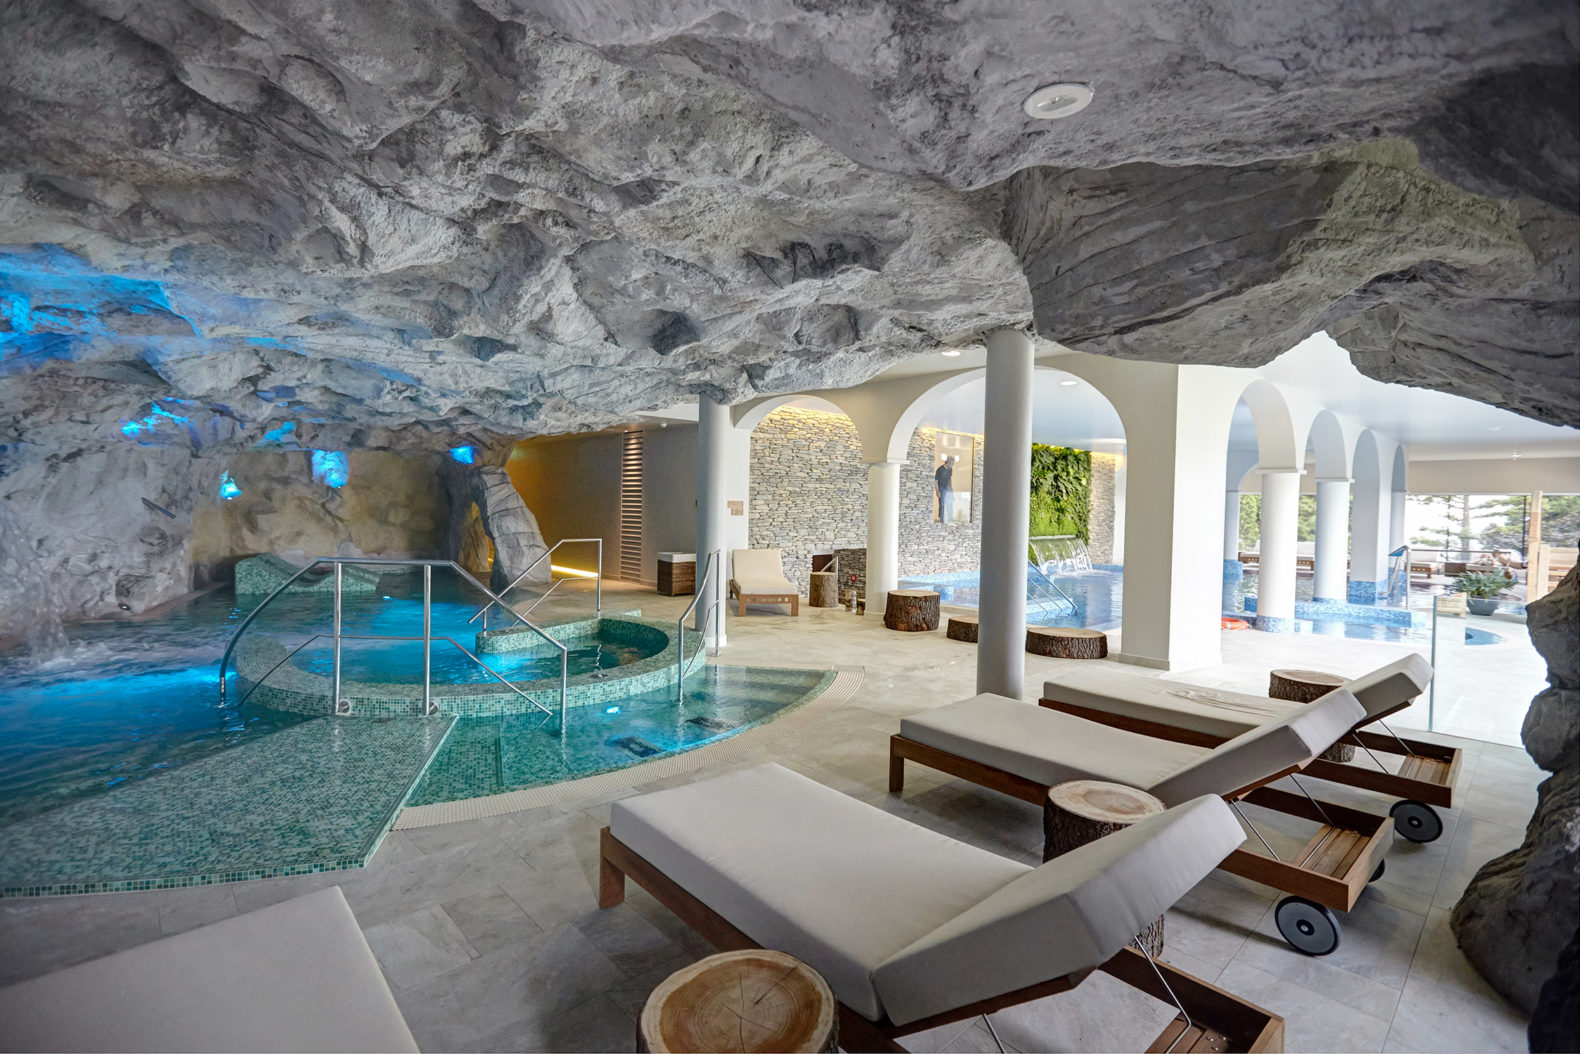 kurhaus_cademario_hotel_Spa_Saline-contrast bath_indoor_relaxing_area_saltstone_cleanair